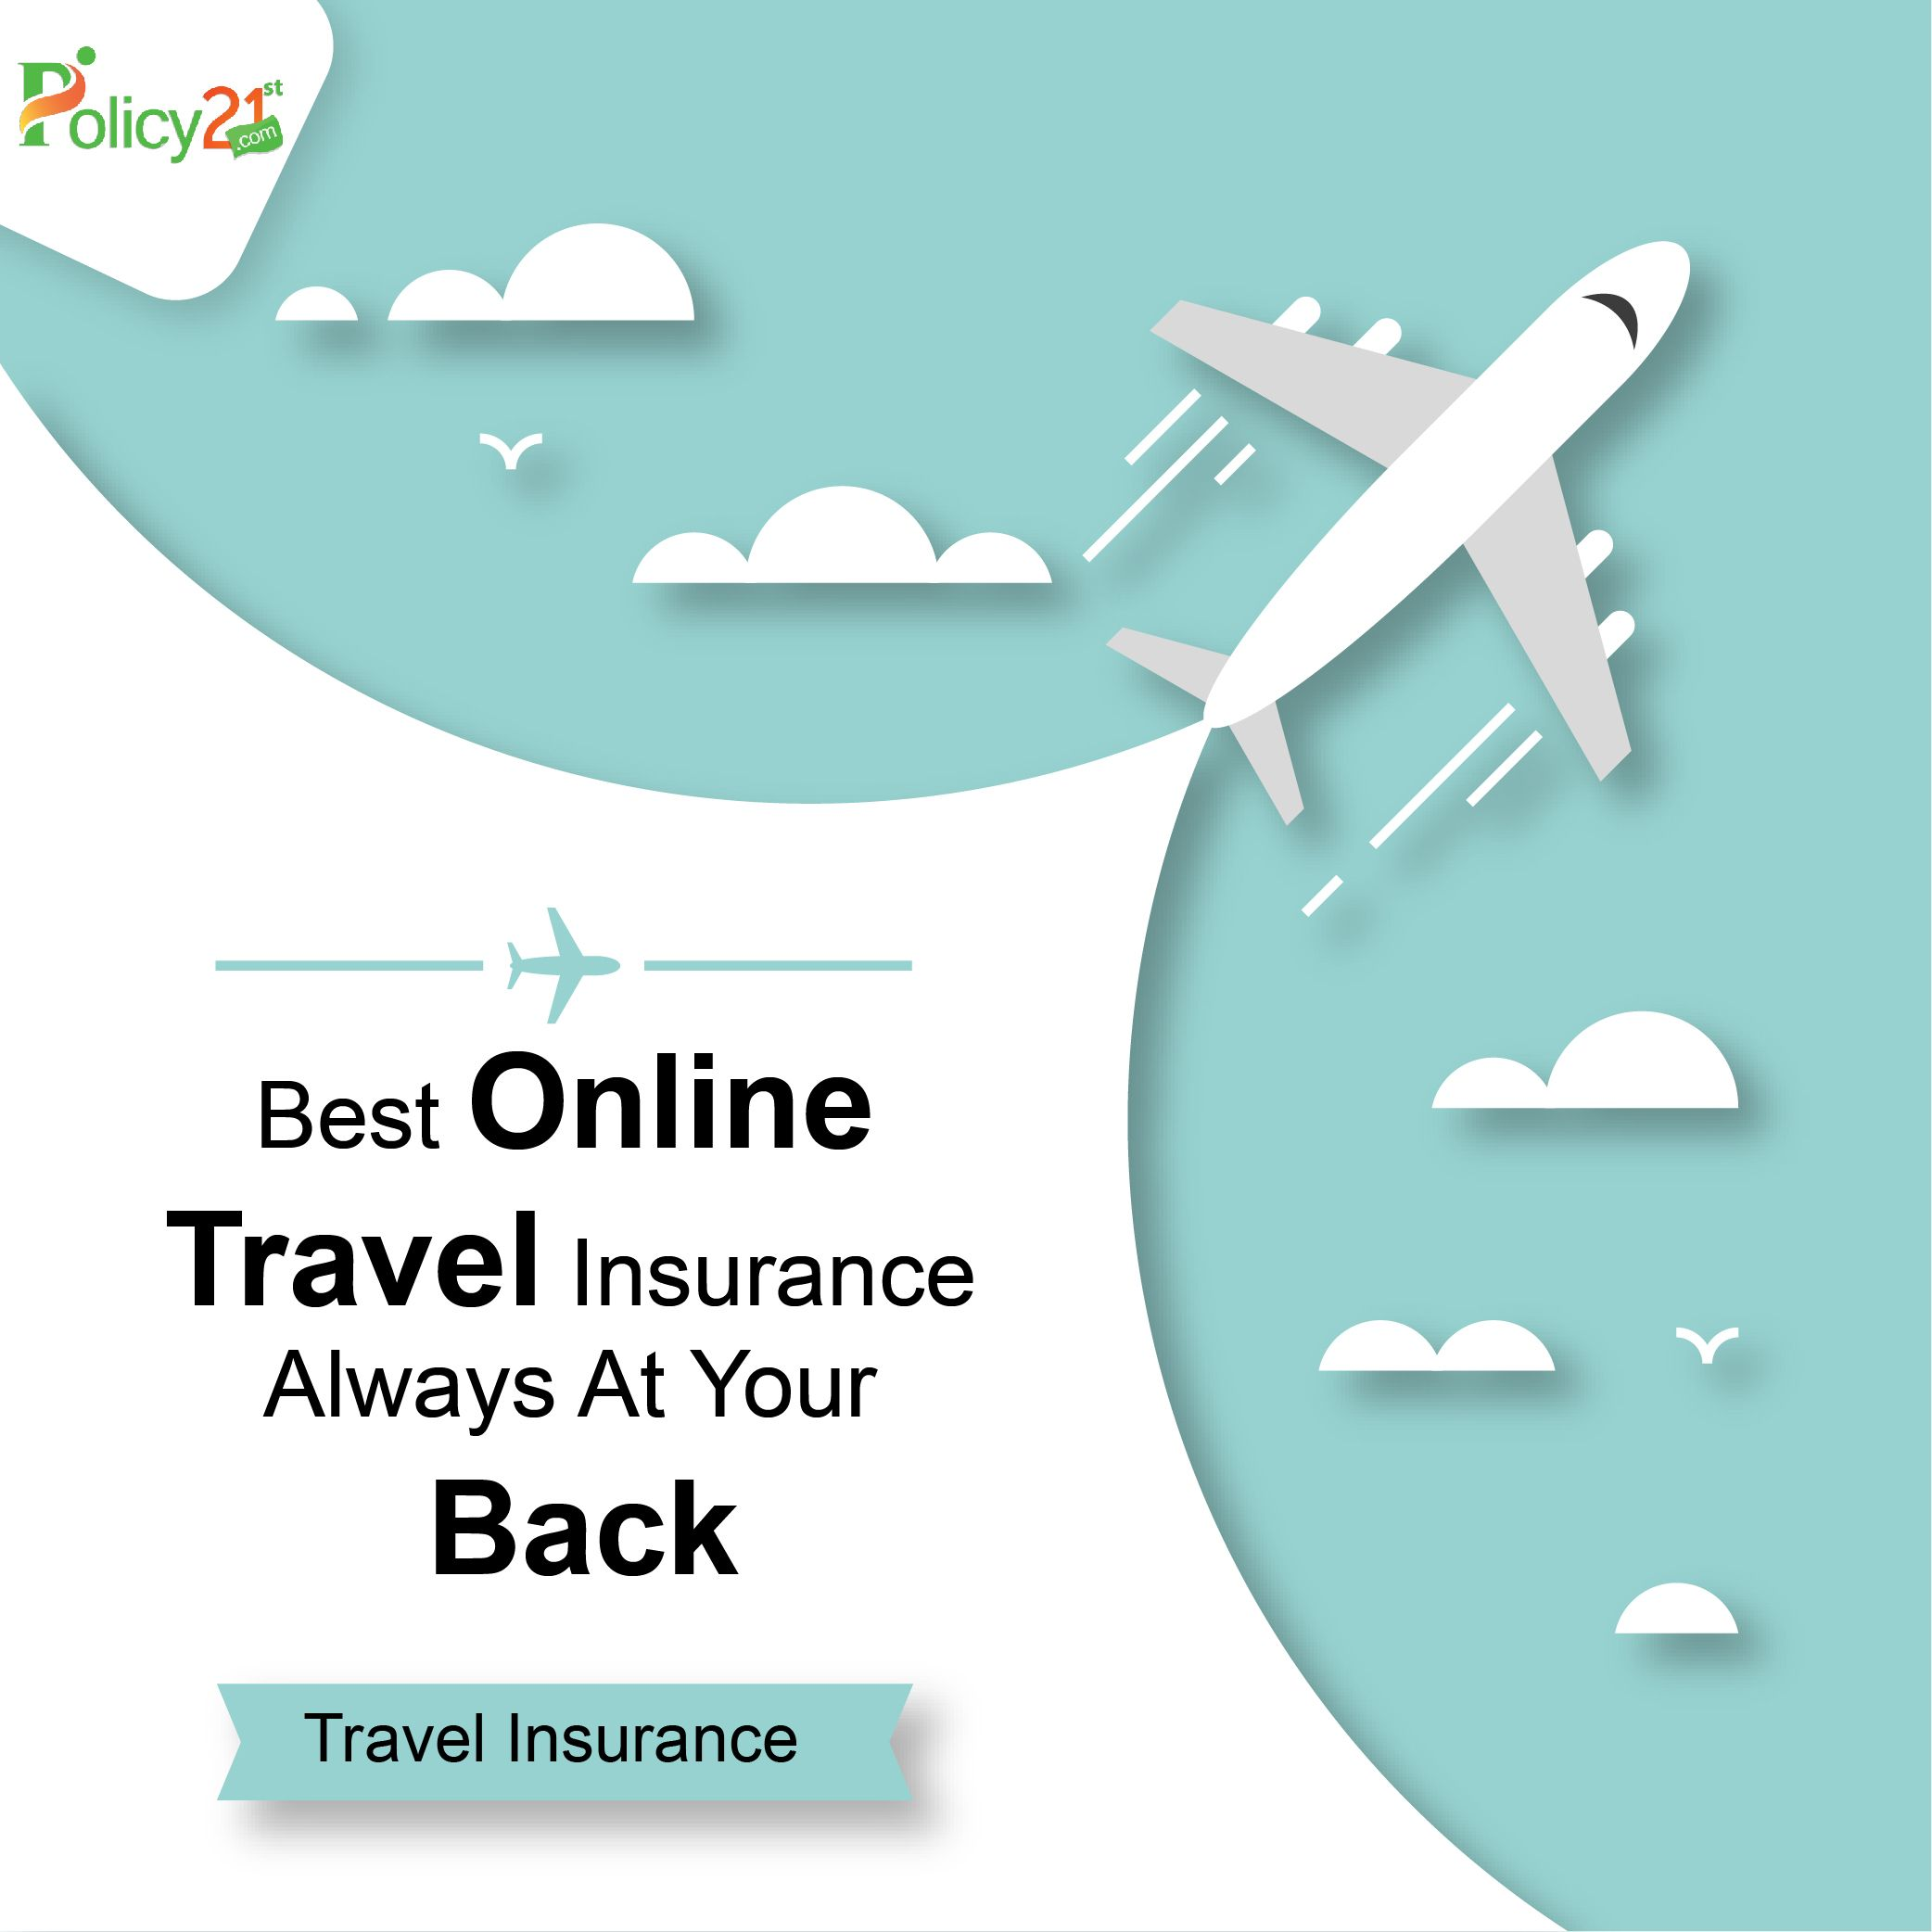 Travel Insurance Compare Best Online Travel Insurance Policy